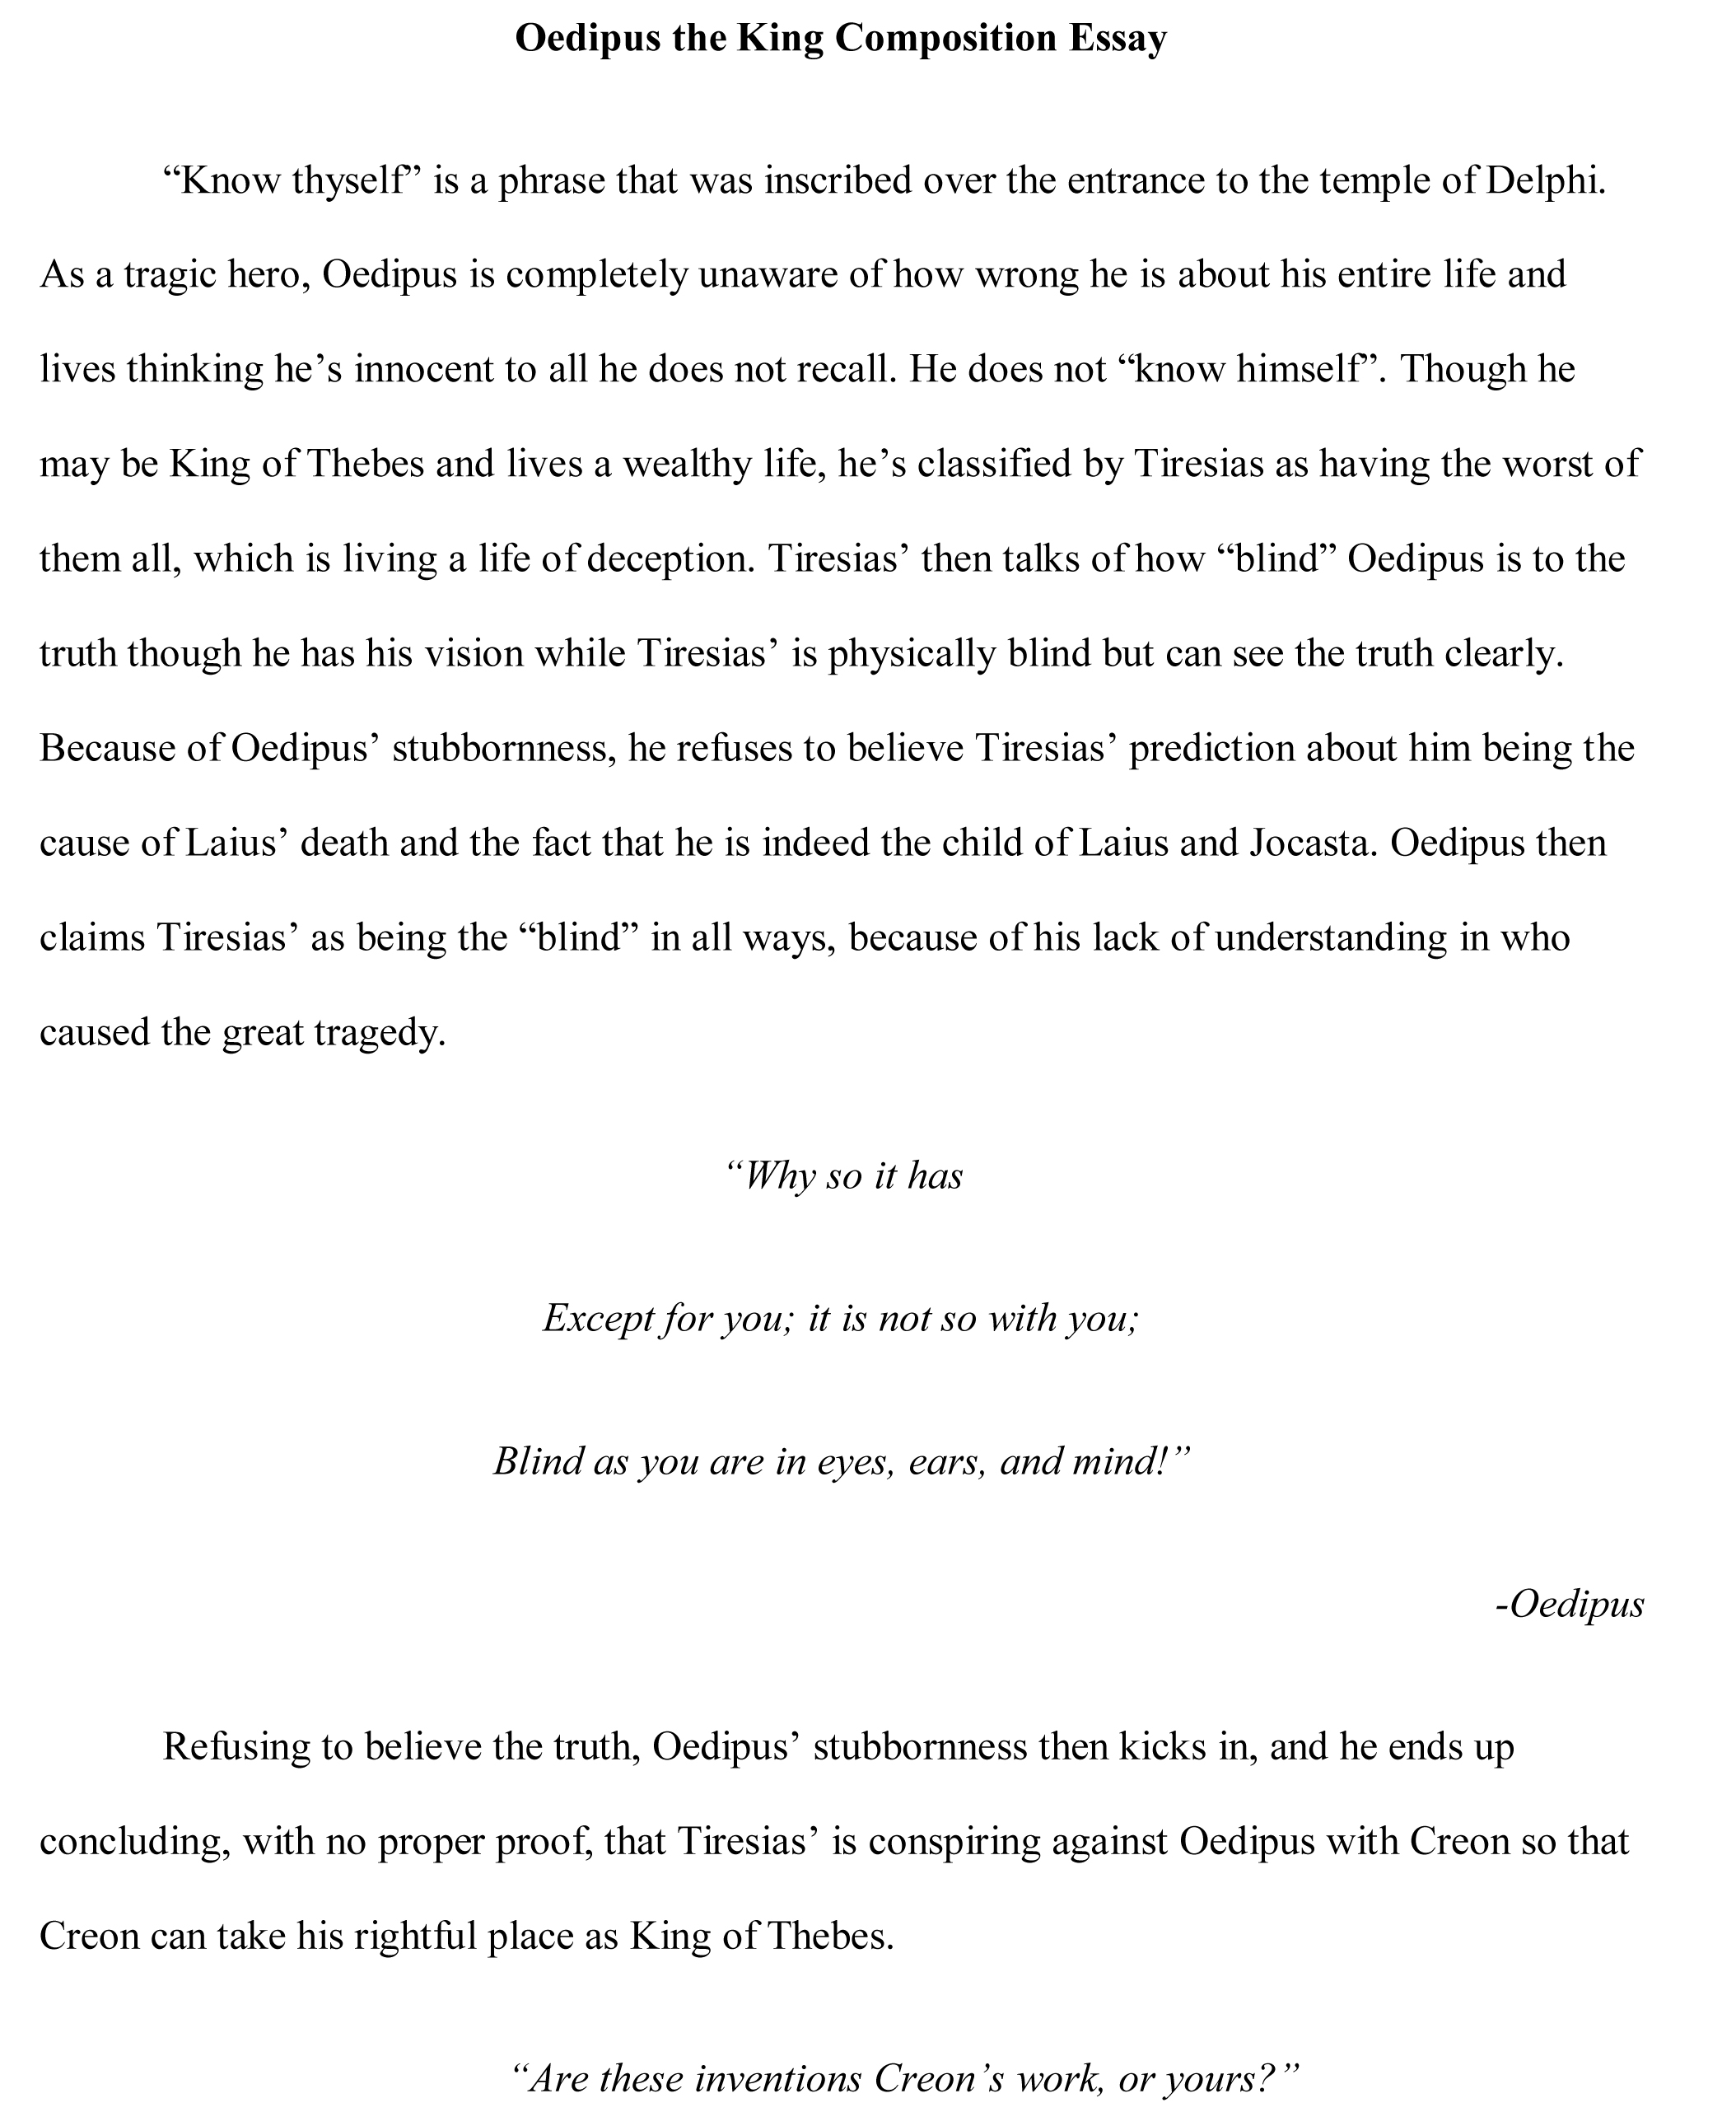 009 An Essay About My Hero Example Oedipus Free Fascinating Heroine Teacher 500 Words A Narrative Full